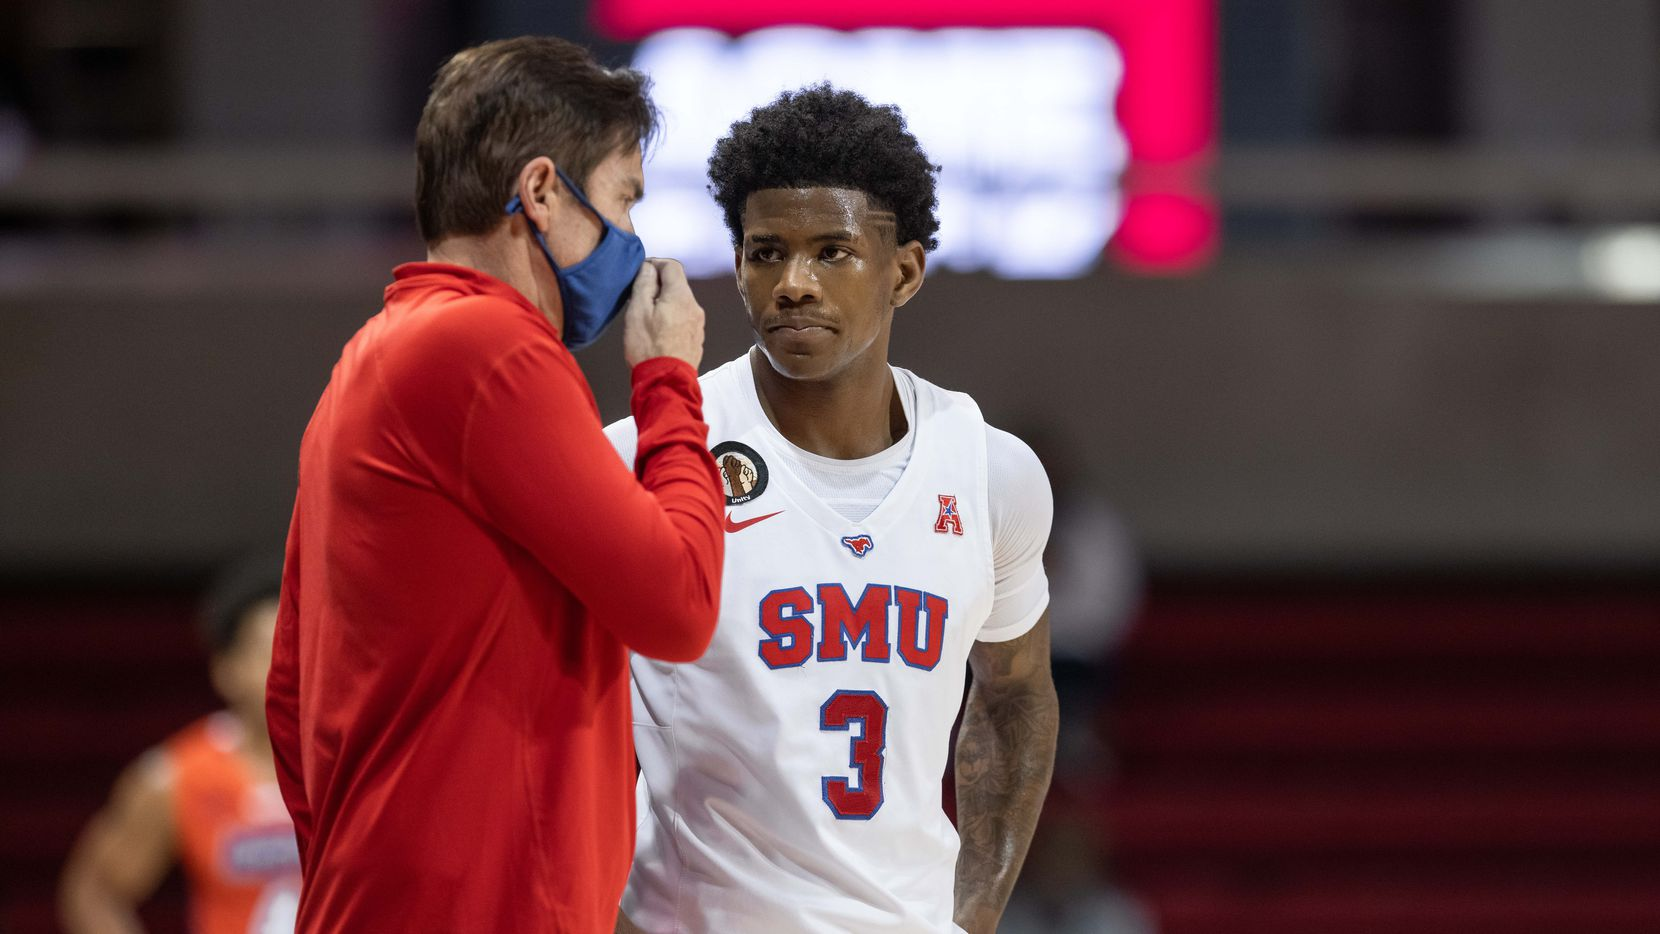 DALLAS, TX - DECEMBER 02: SMU Mustangs guard Kendric Davis (#3) talks to SMU Mustangs head coach Tim Jankovich during the college basketball game between the SMU Mustangs and the Houston Baptist Huskies on December 02, 2020, at Moody Coliseum in Dallas, TX.